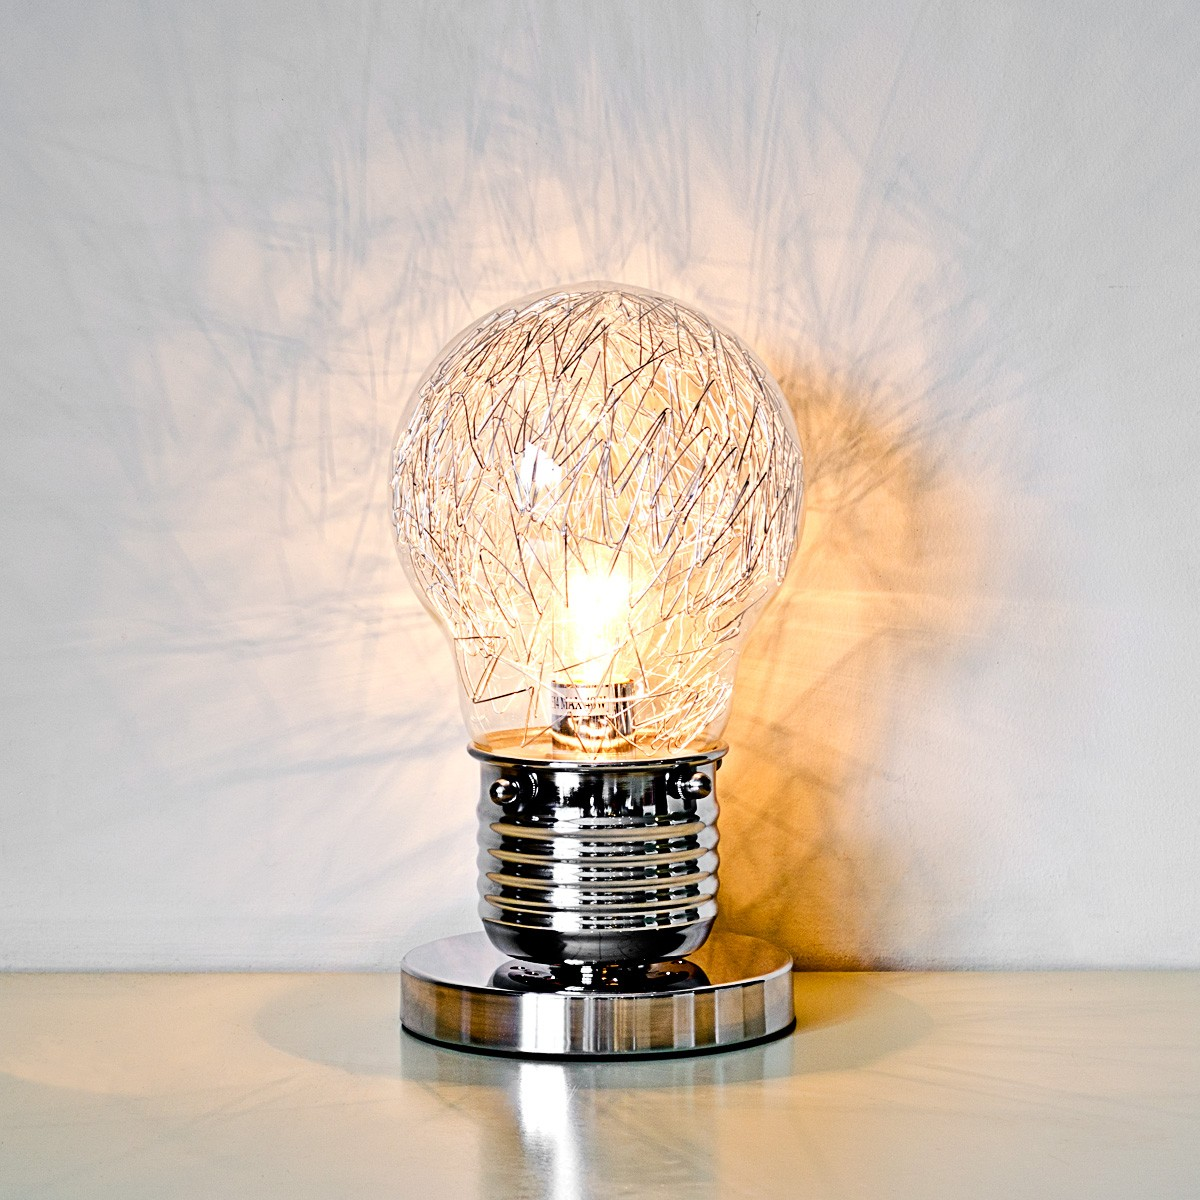 10 adventiges of light bulb table lamp warisan lighting 10 adventiges of light bulb table lamp mozeypictures Image collections